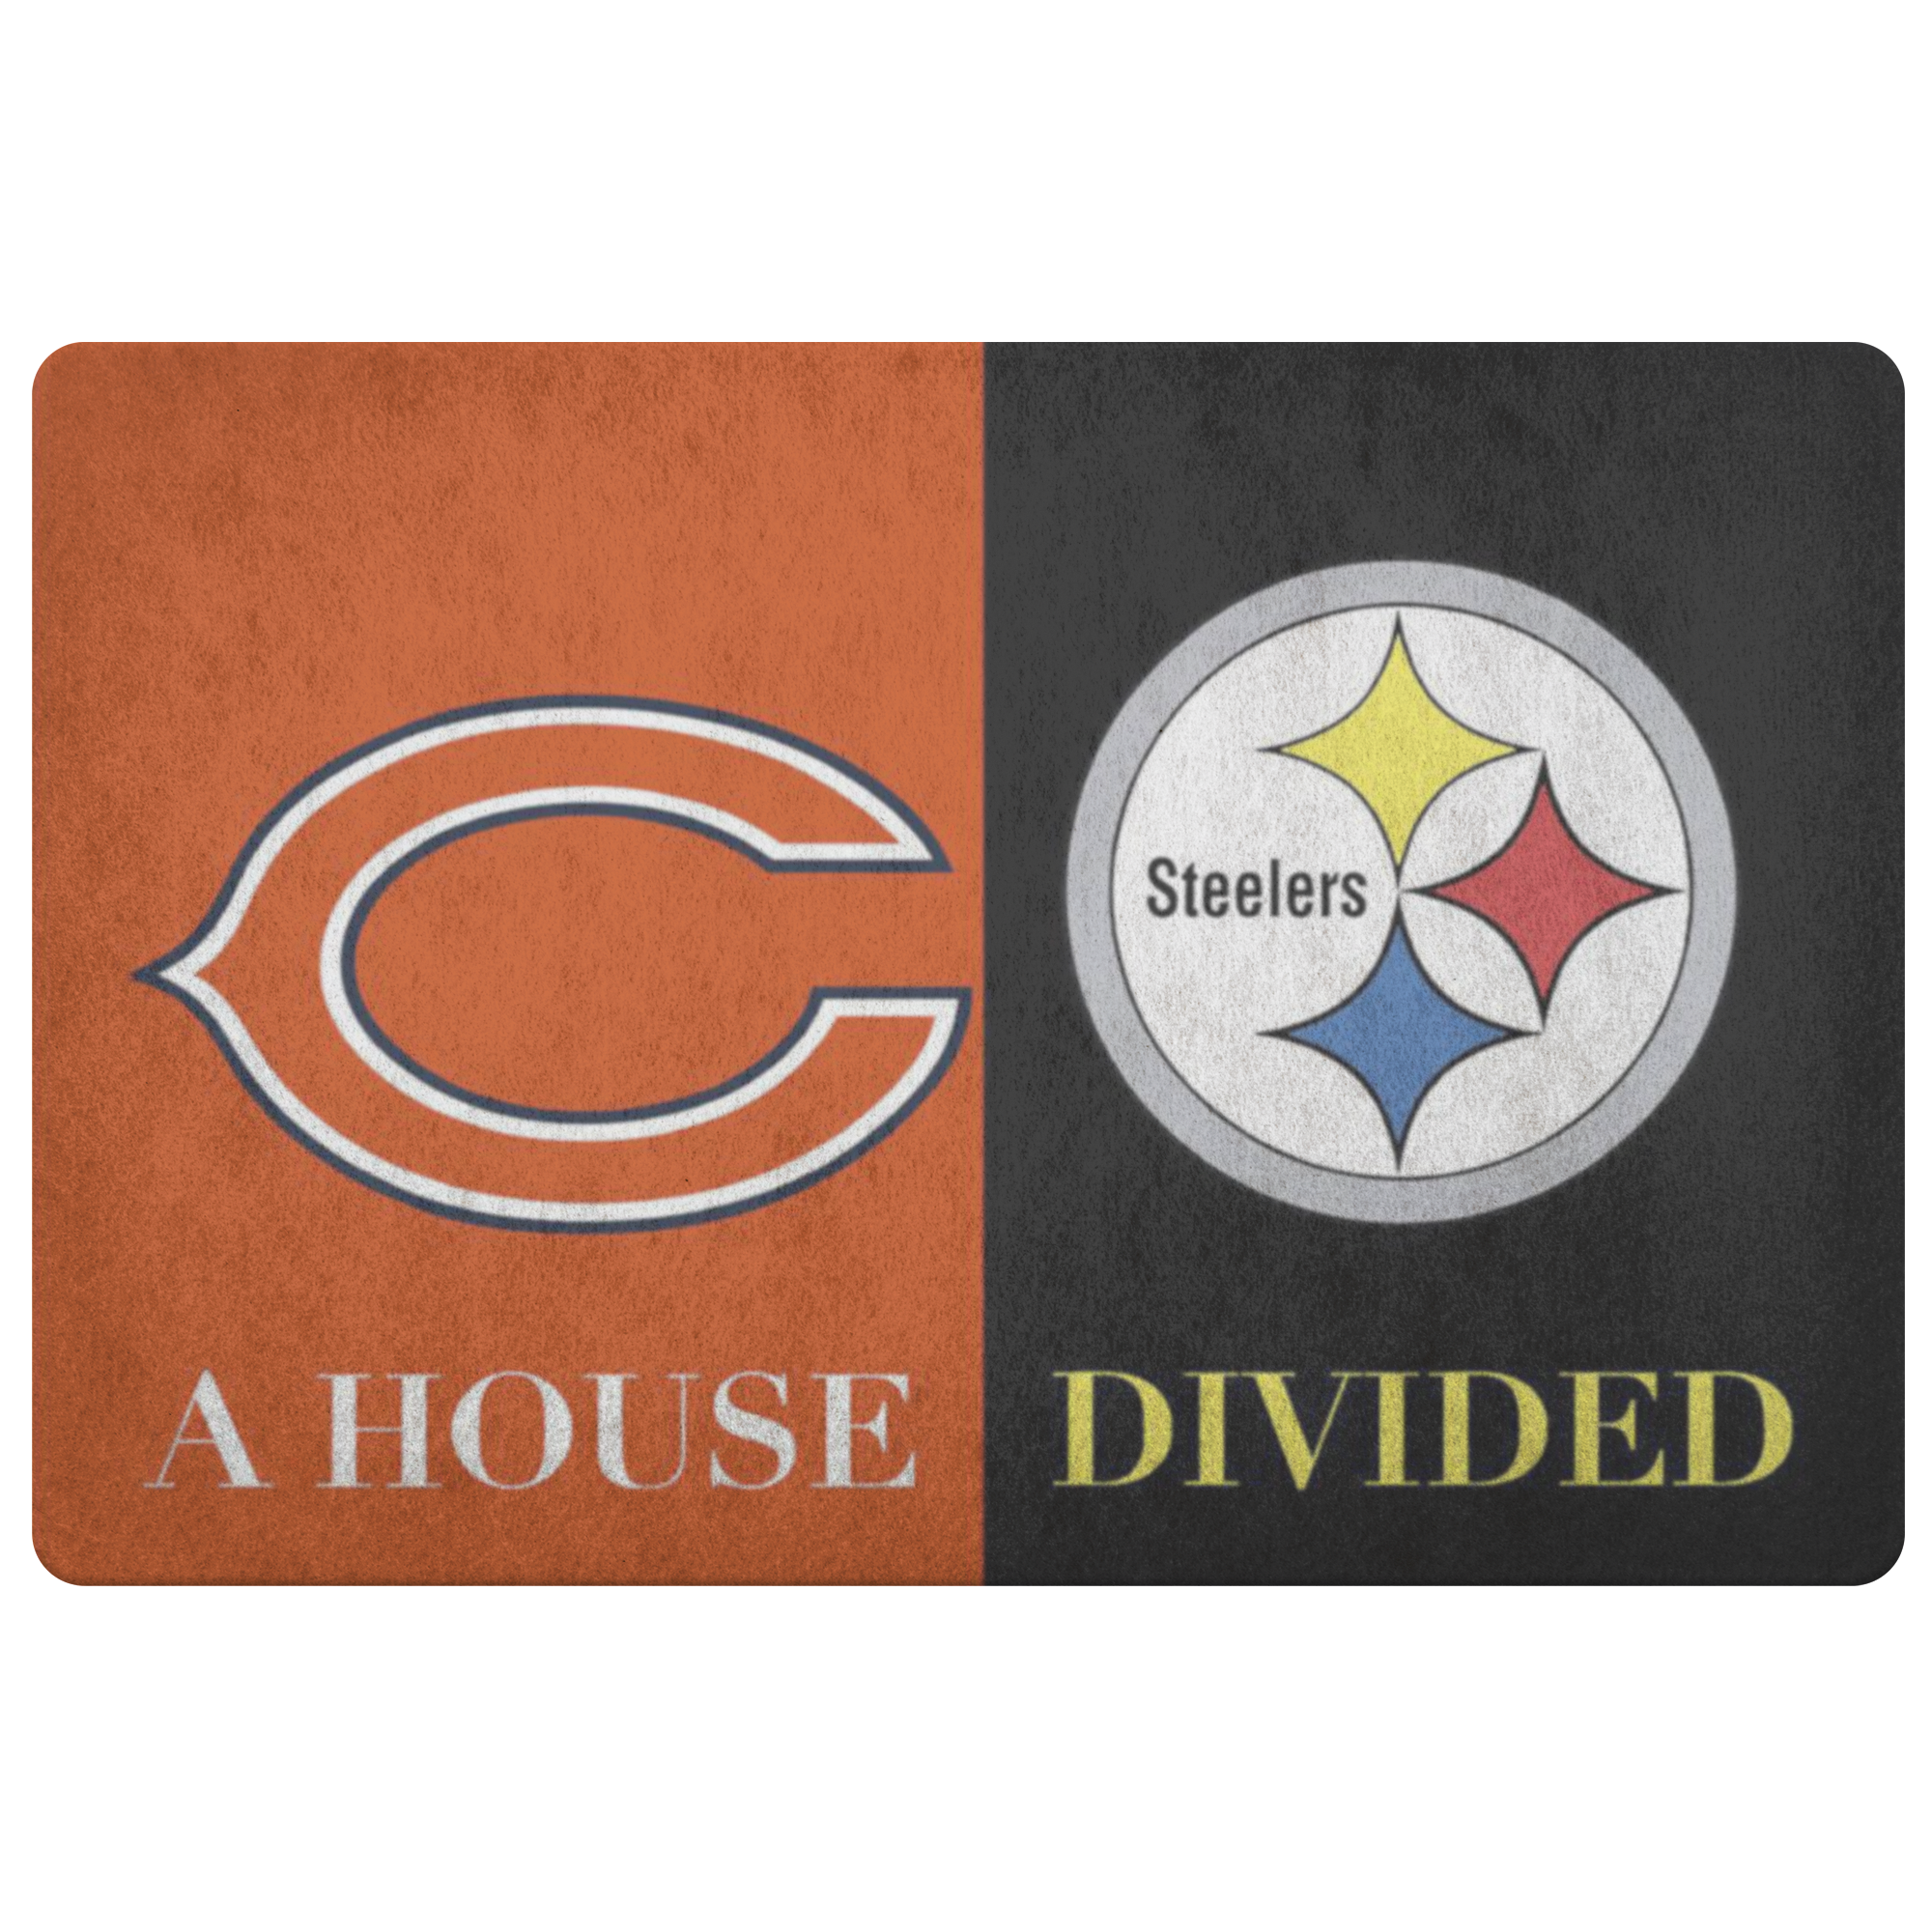 House Divided Man Cave Decor Steelers Doormat - silverageproducts.com